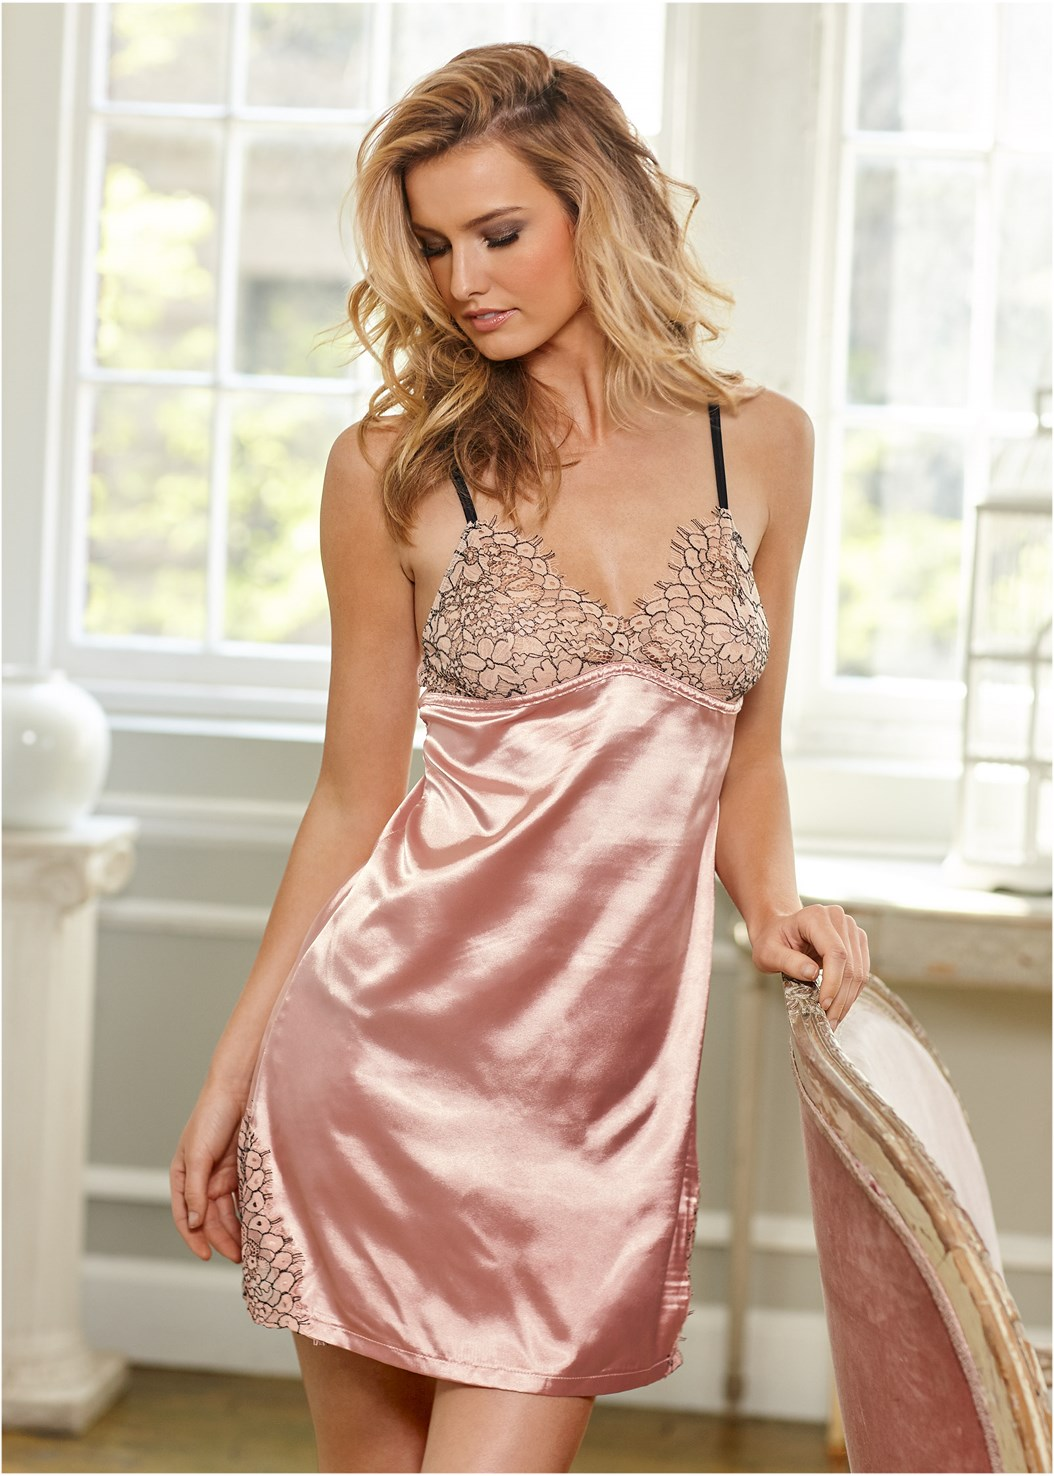 Lace Detail Satin Chemise,High Heel Strappy Sandals